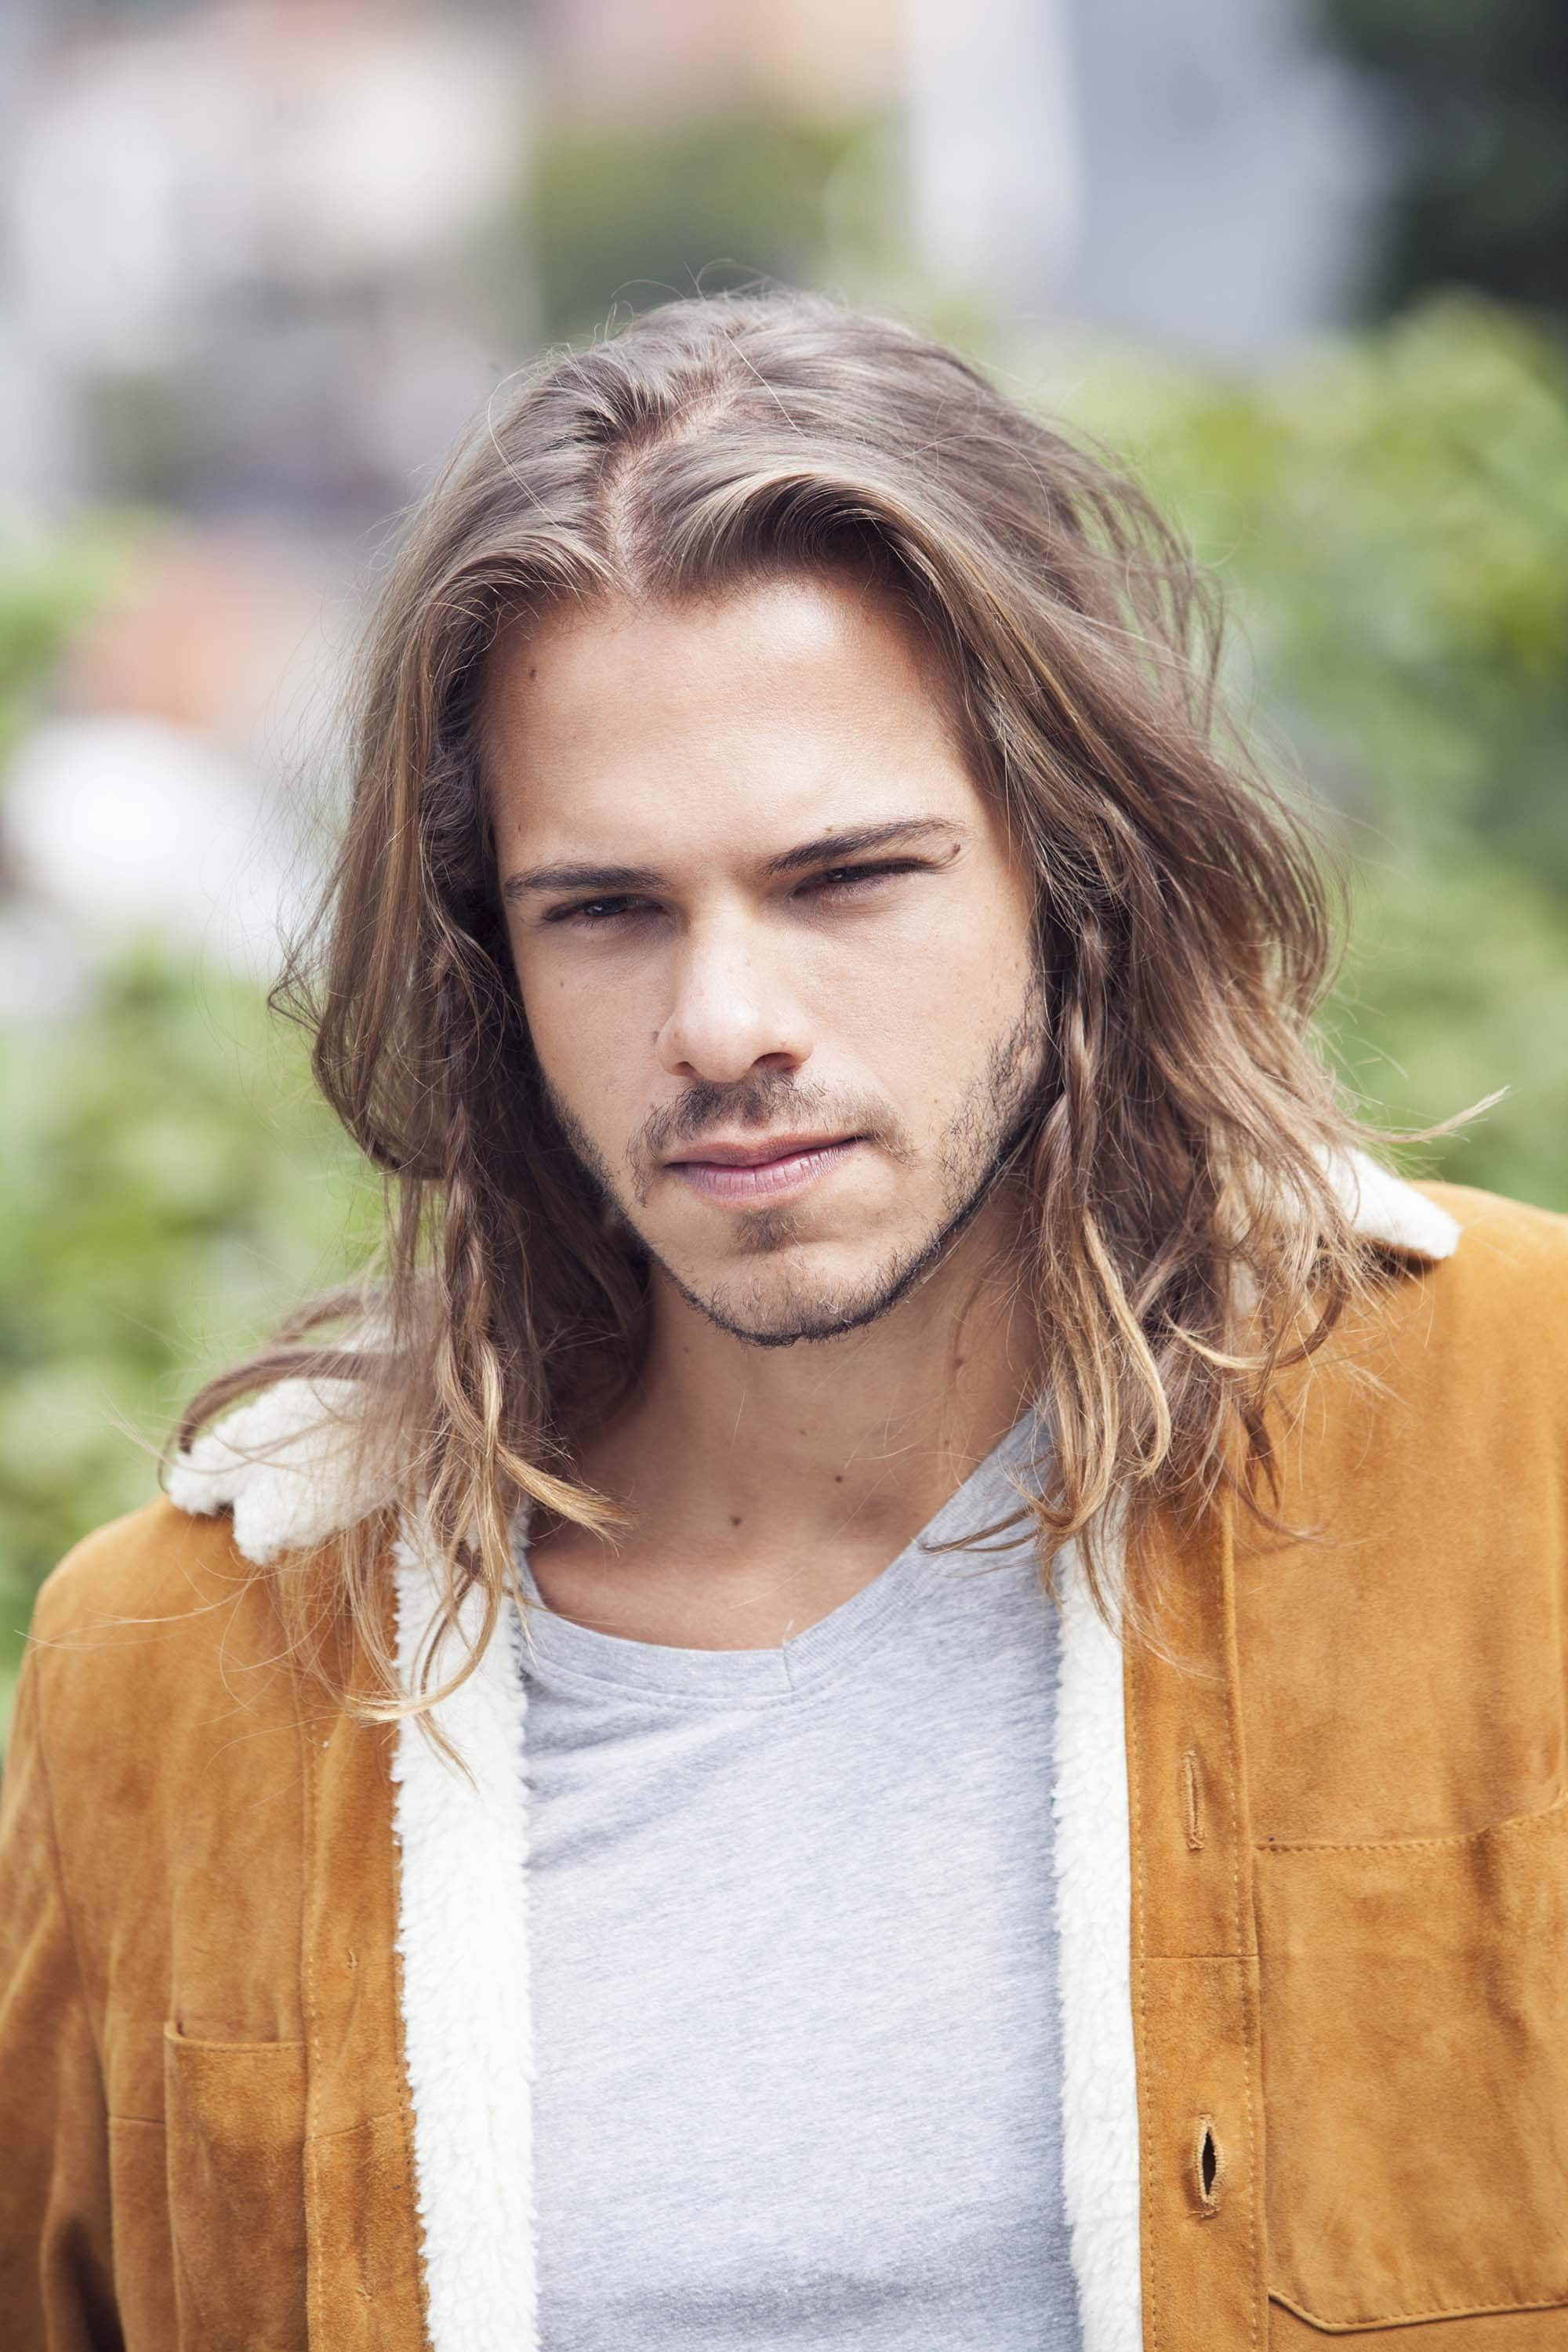 Best ideas about Mens Hairstyles For Long Hair . Save or Pin Edgy long hairstyles men can pull off Now.